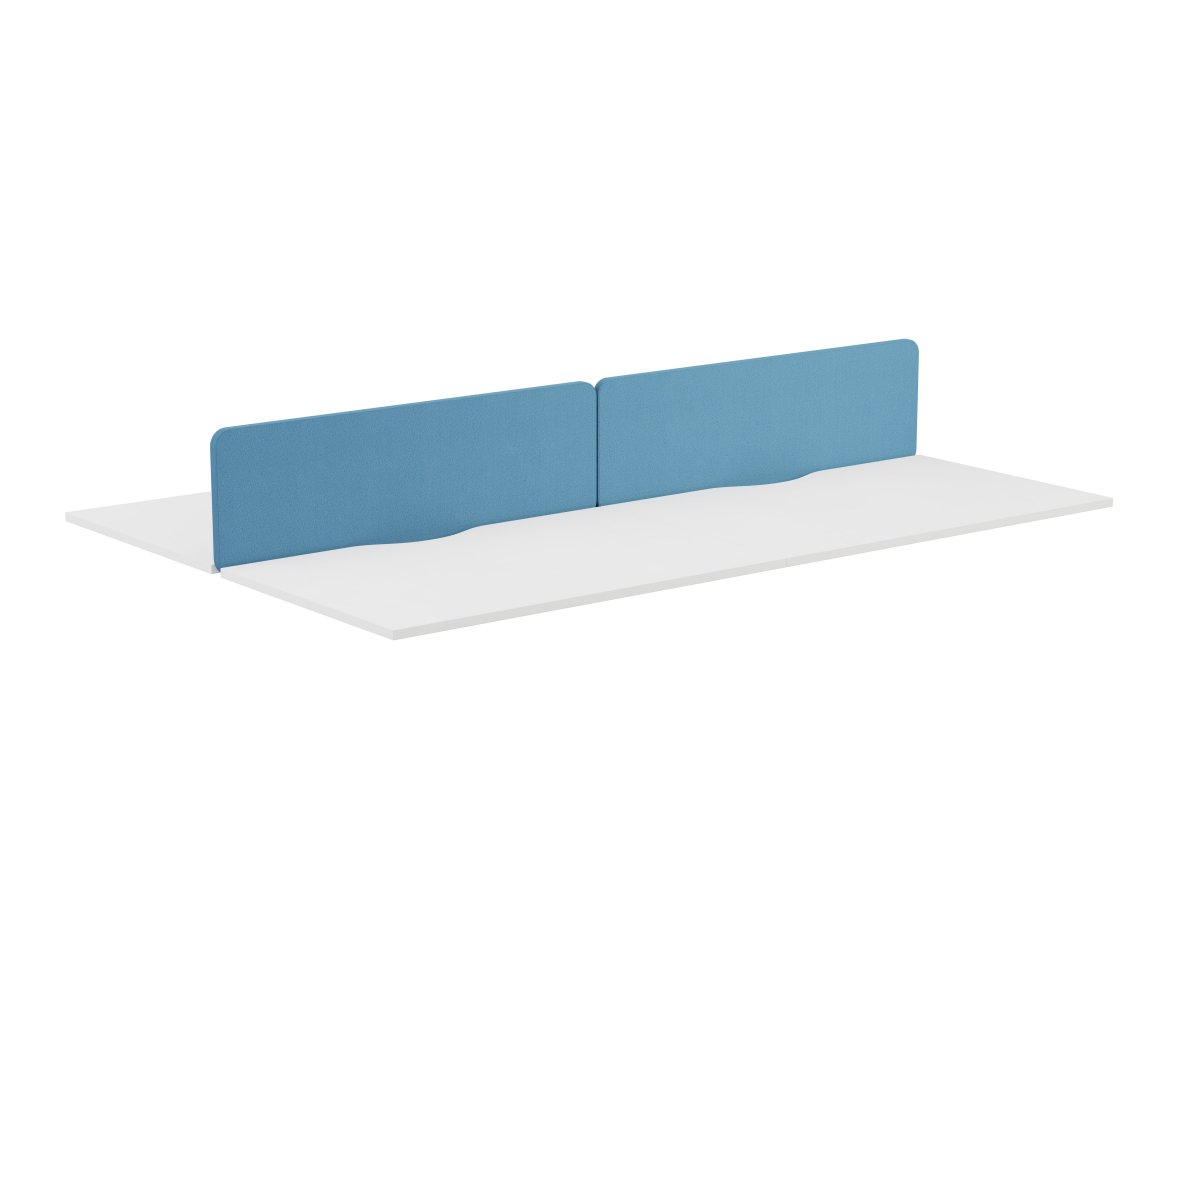 Elco Straight Screen - 1400W X 380H Band 1